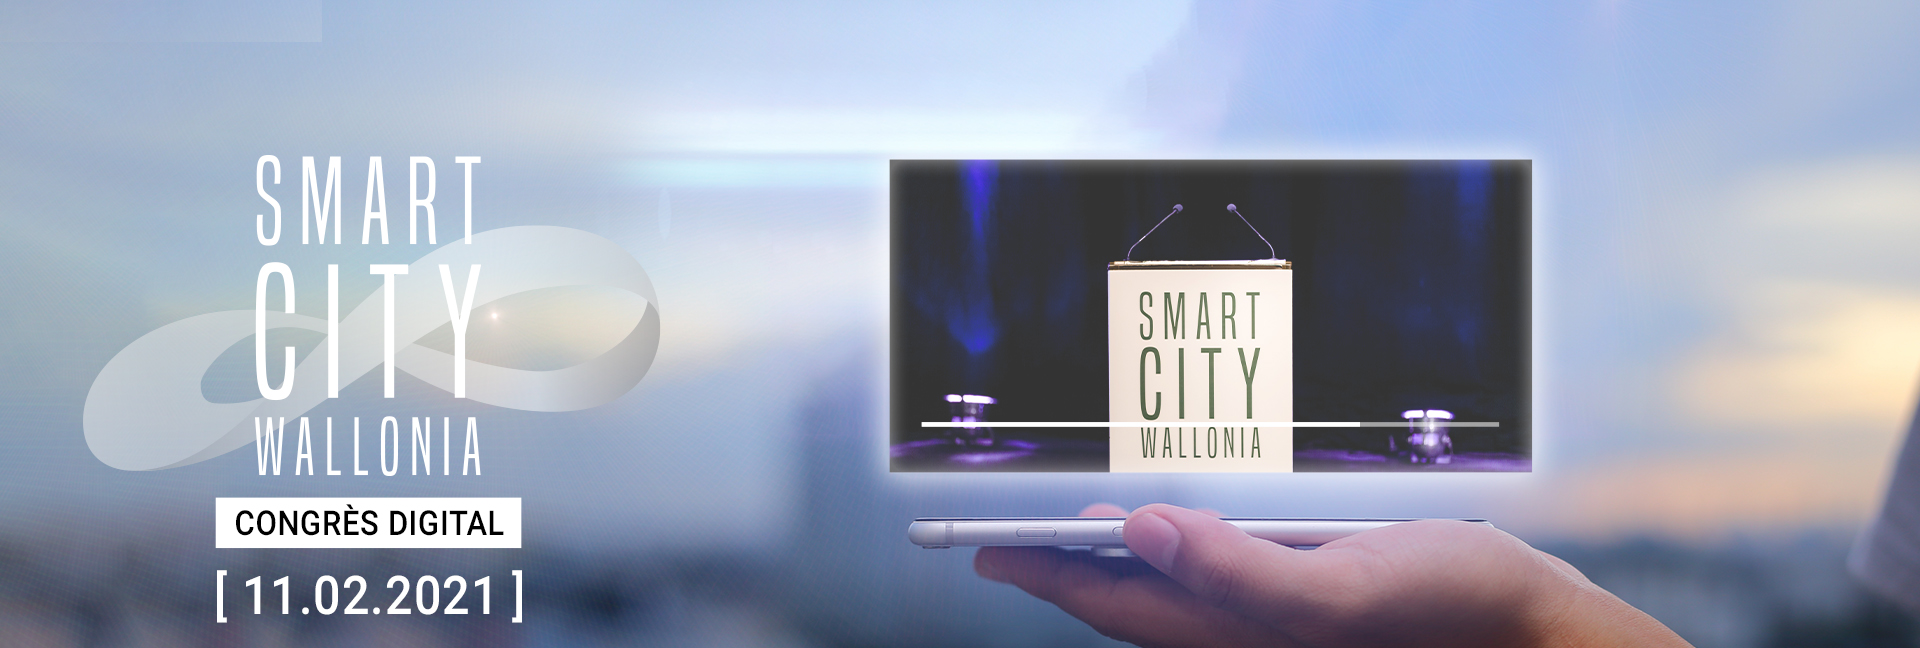 Retour sur le Congrès digital Smart City Wallonia